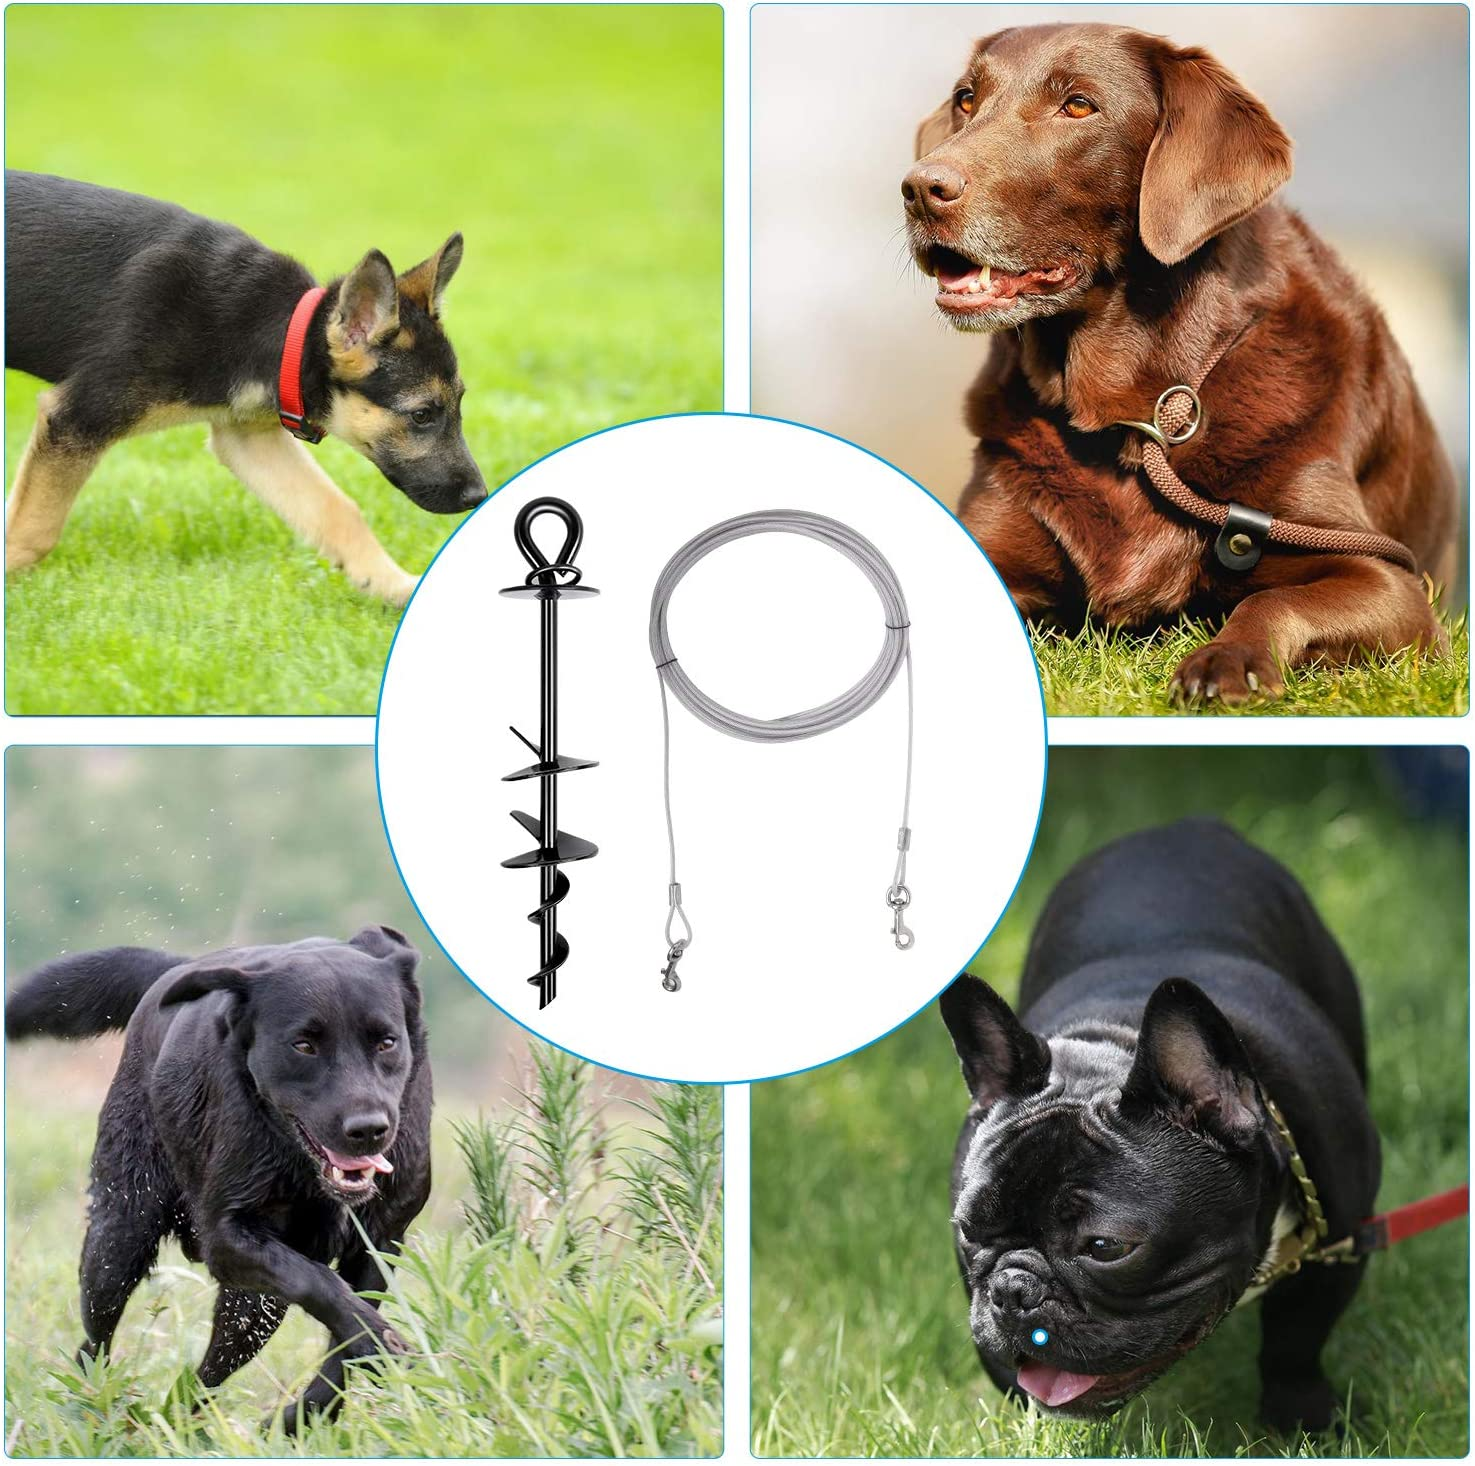 Dog Tie Out Cable and Stake,Heavy Duty Pet Leash Spiral Stakes for Yard Outdoor Camping,Fit for Small Medium Large Dogs,with 30ft Cable and Folding Bowl SIMPLY